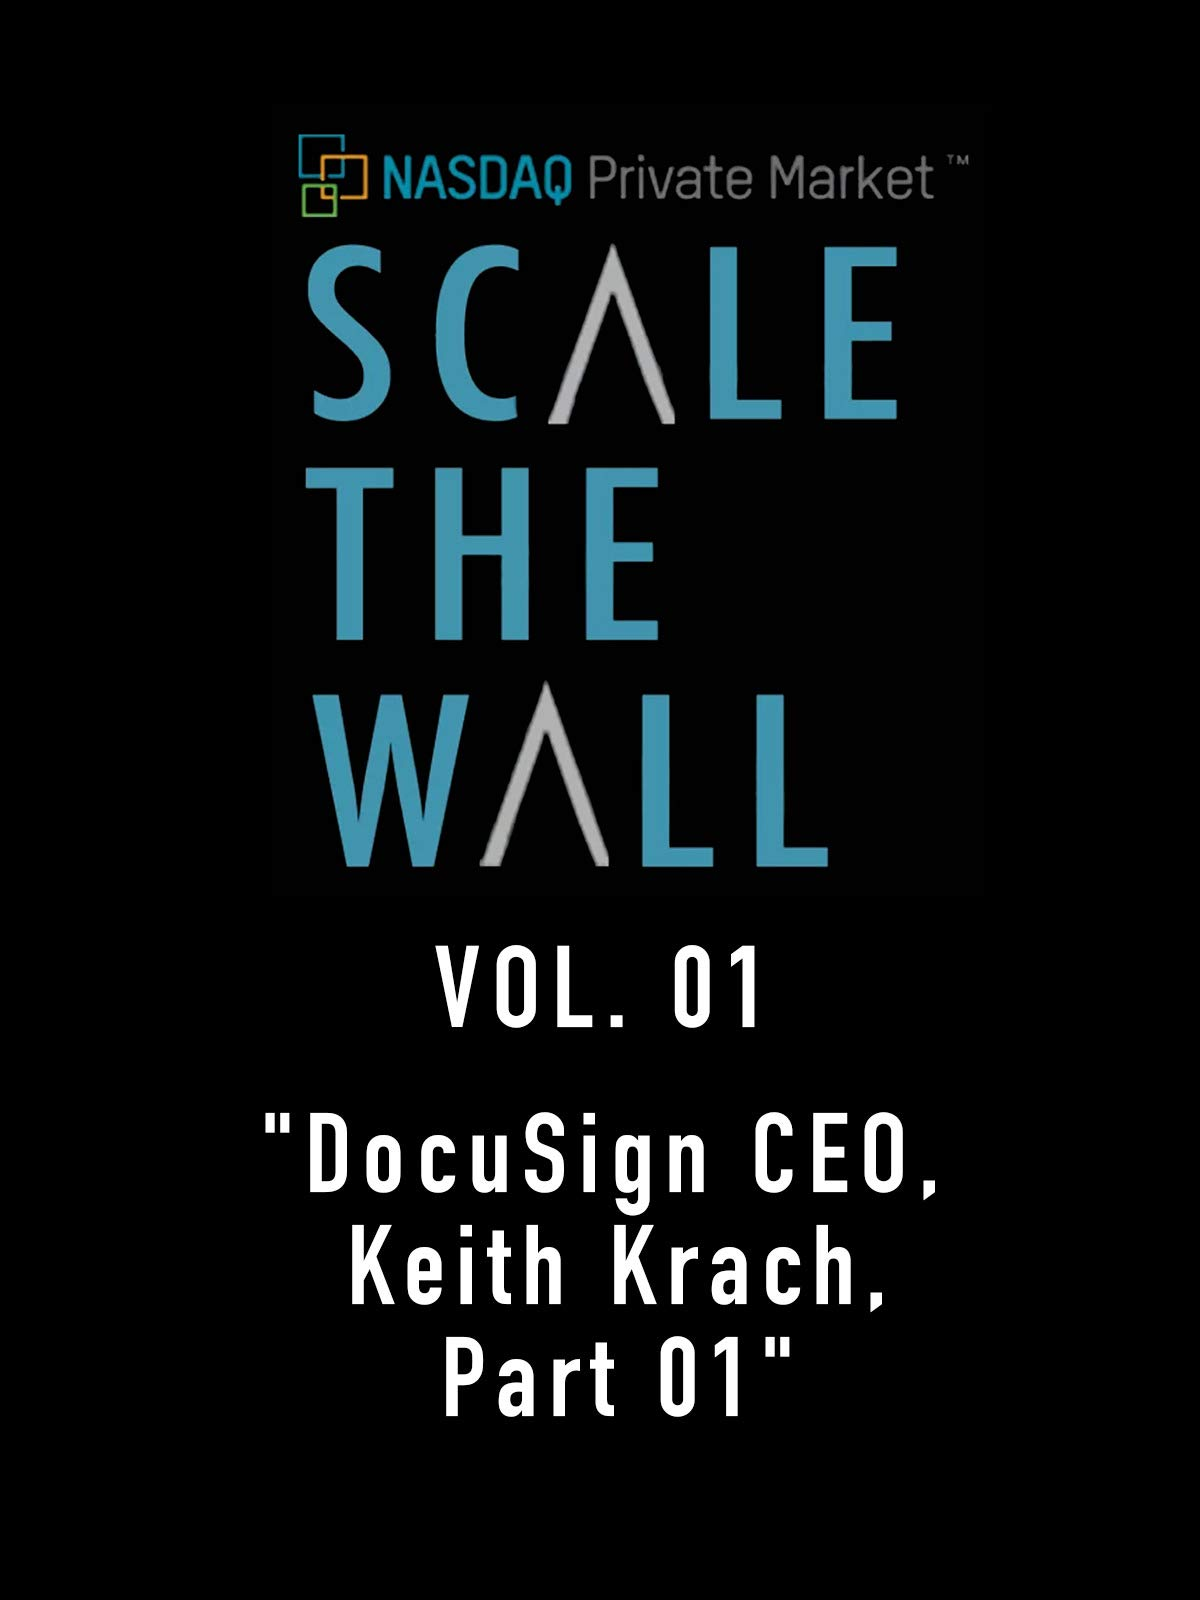 Scale the Wall Vol. 01